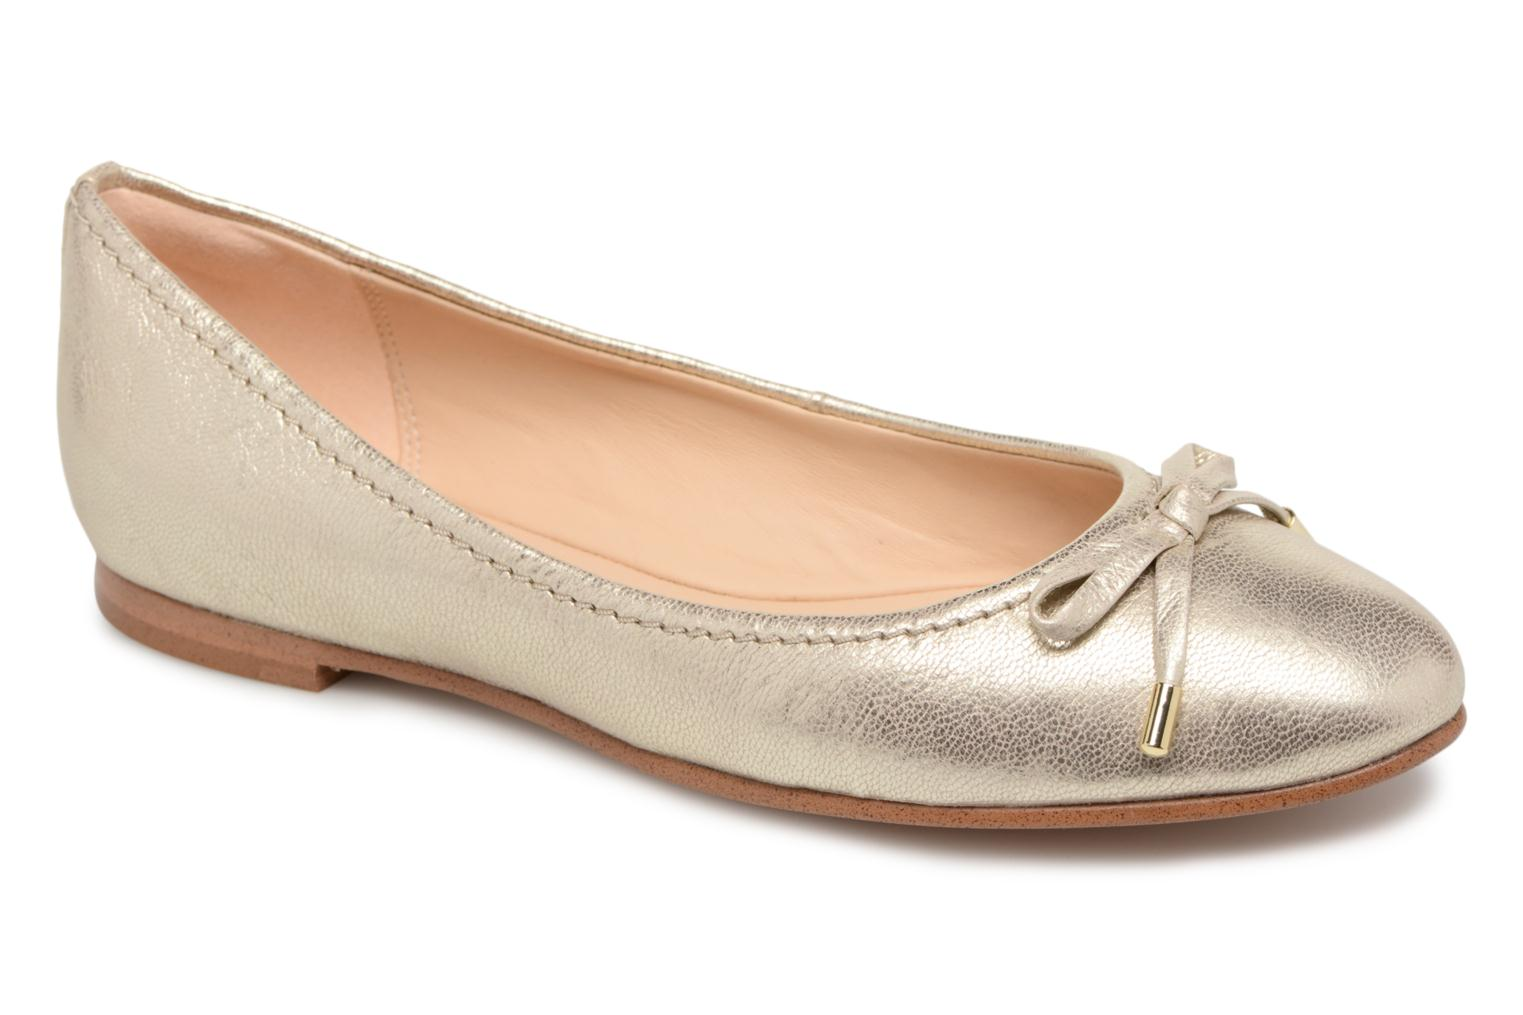 Lily Lily Grace Grace Champagne Clarks Clarks Clarks Champagne x6YqBwg8